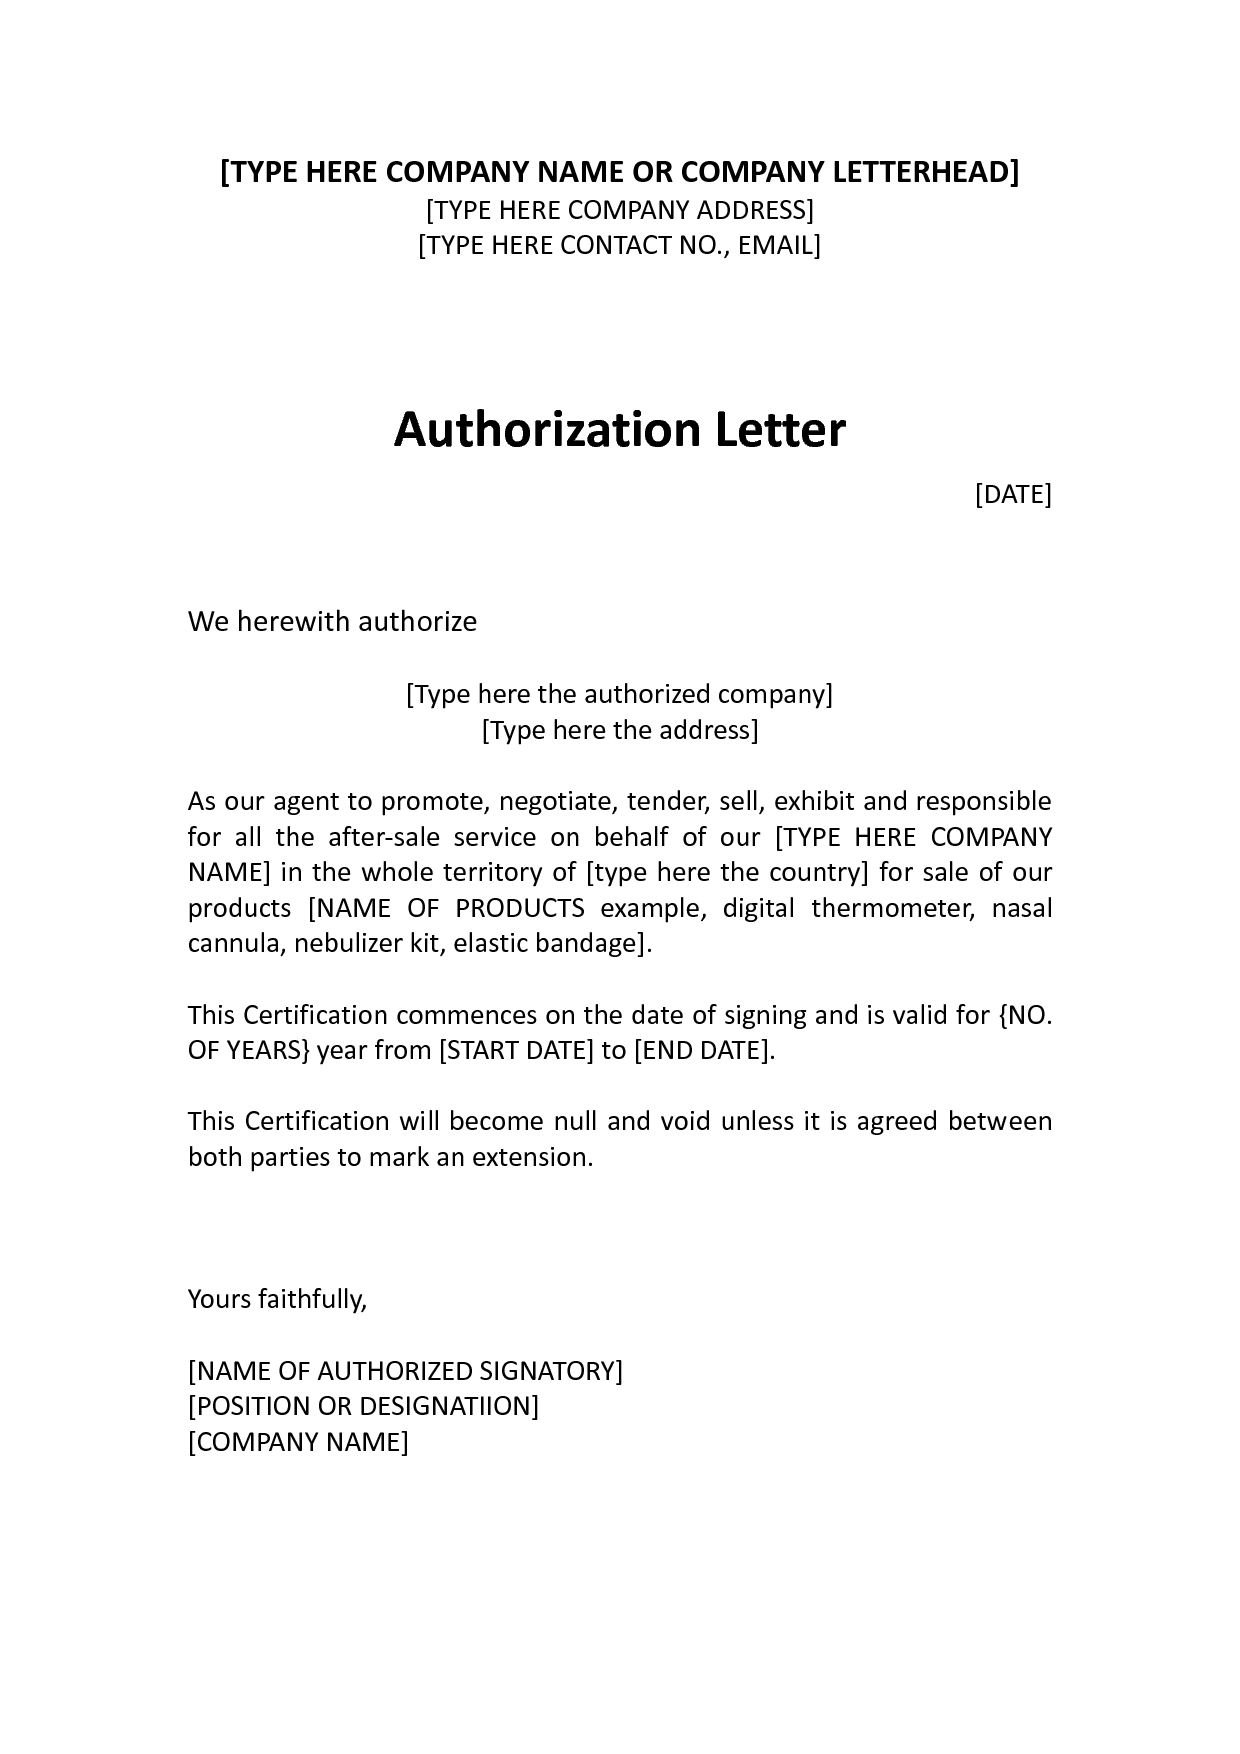 Letter Of Offer to Purchase Property Template - Authorization Distributor Letter Sample Distributor Dealer